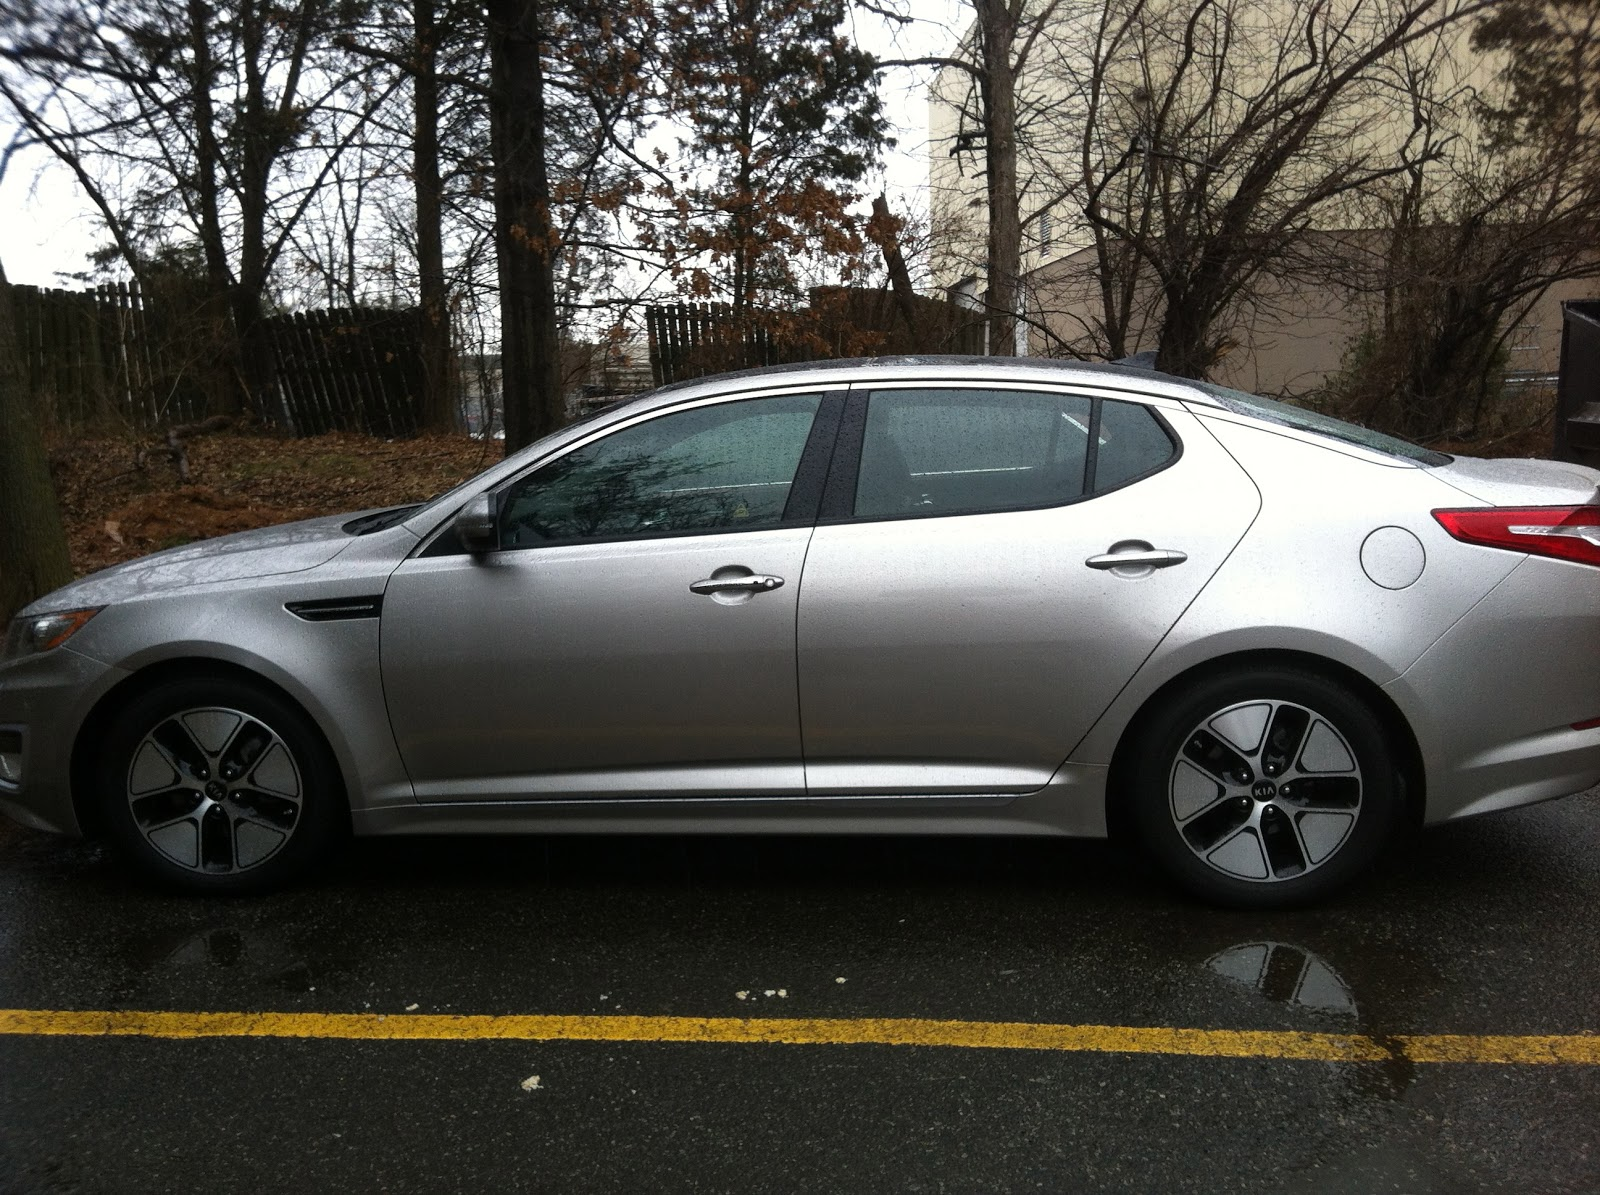 Kia Optima Review, Hybrid, Kia Optima, Car Review, Family Car